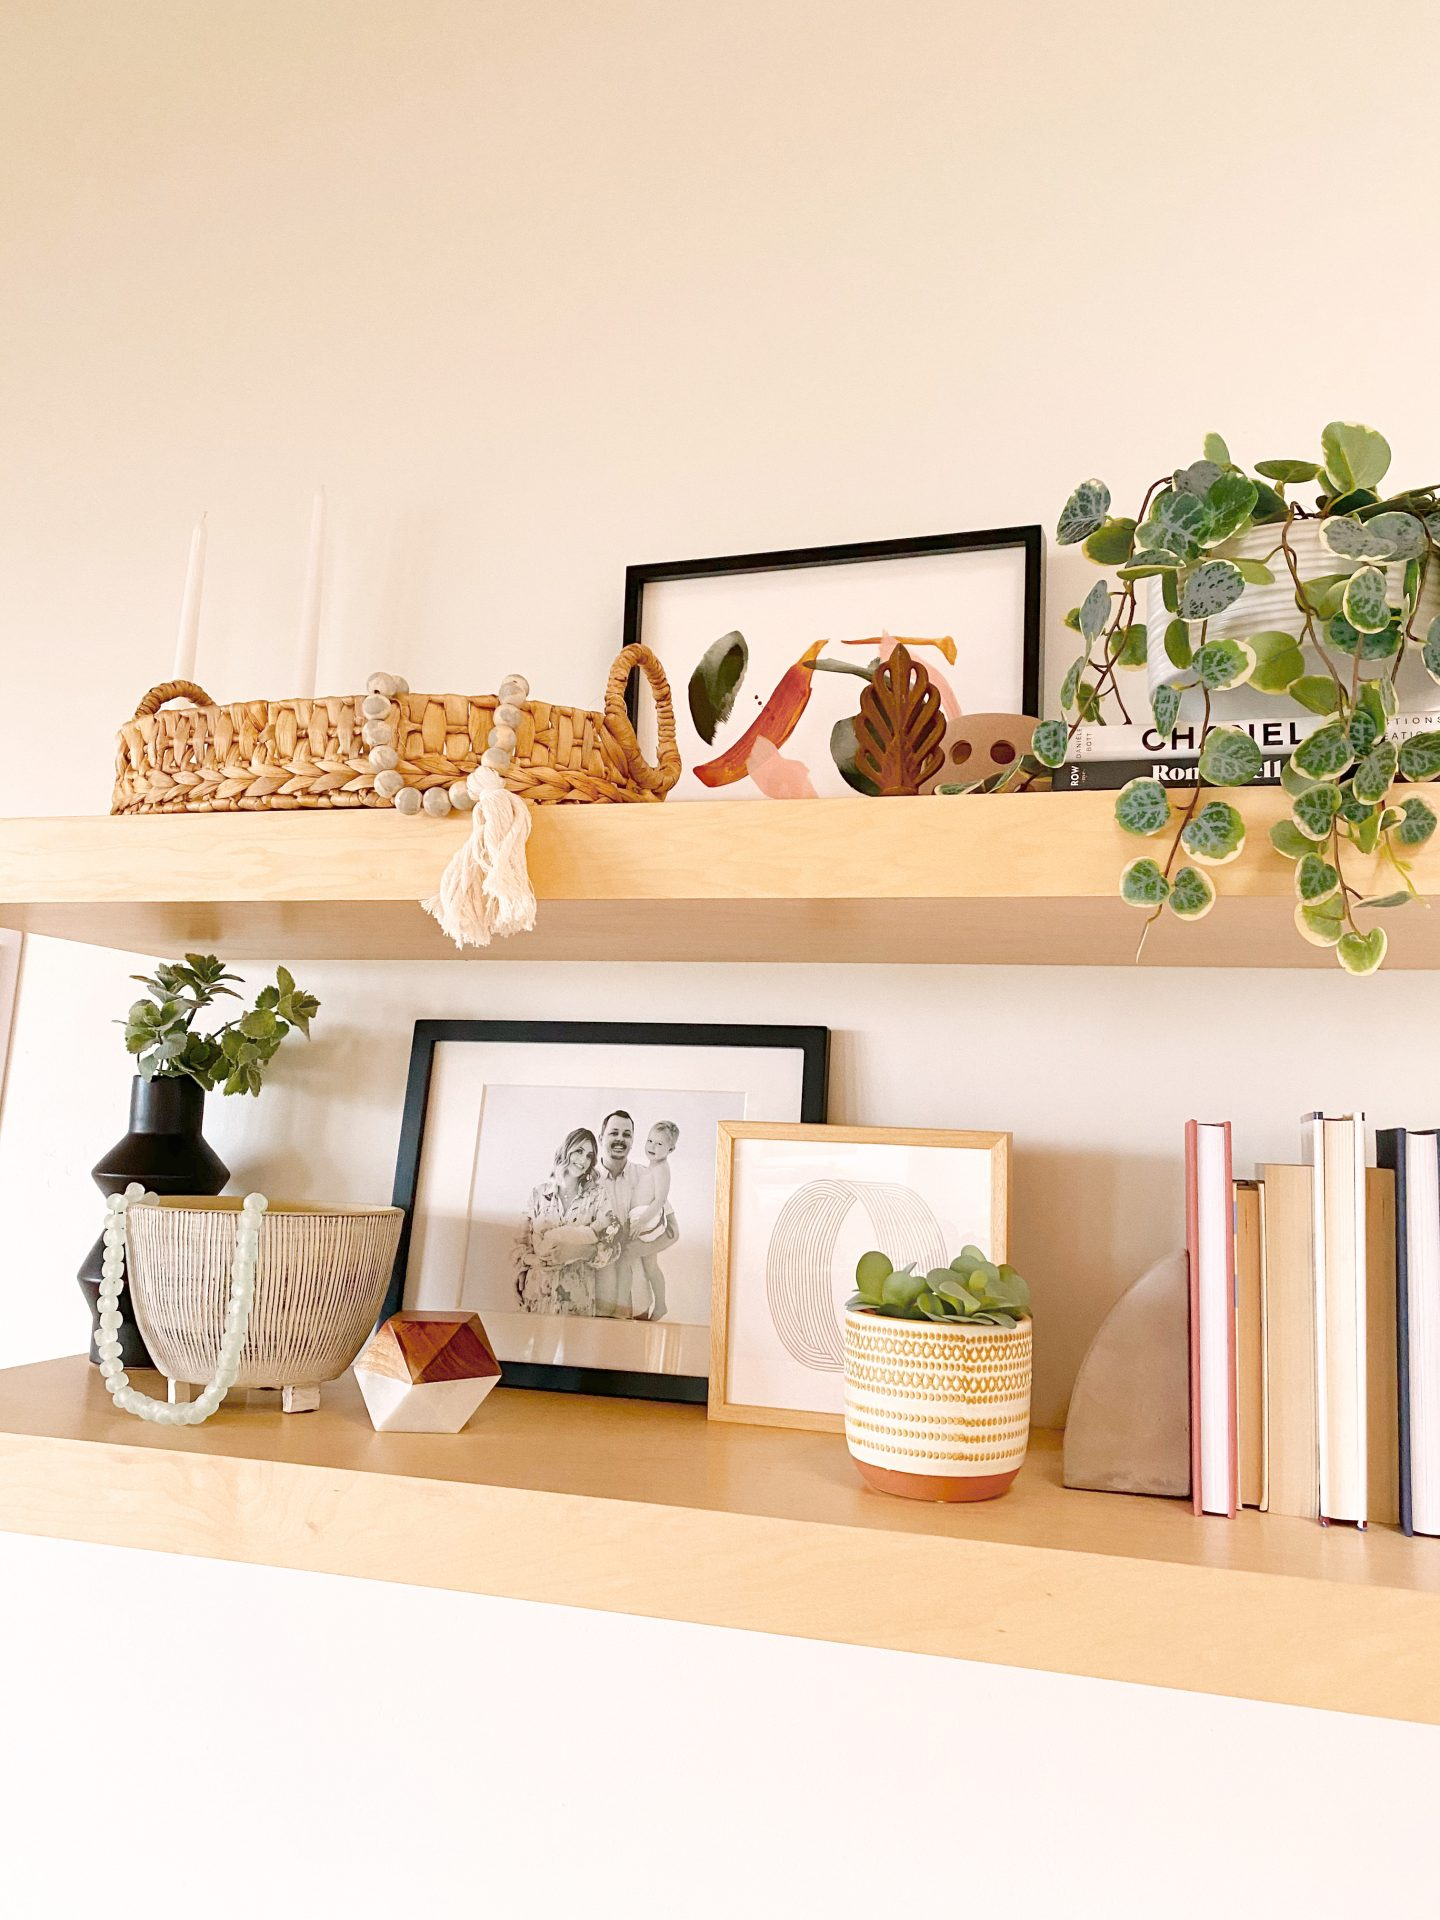 Frambridge Frames by popular San Diego life and style blog, Navy Grace: image of two floating shelves with framebridge frames, a potted plant, books, and a straw basket on it.